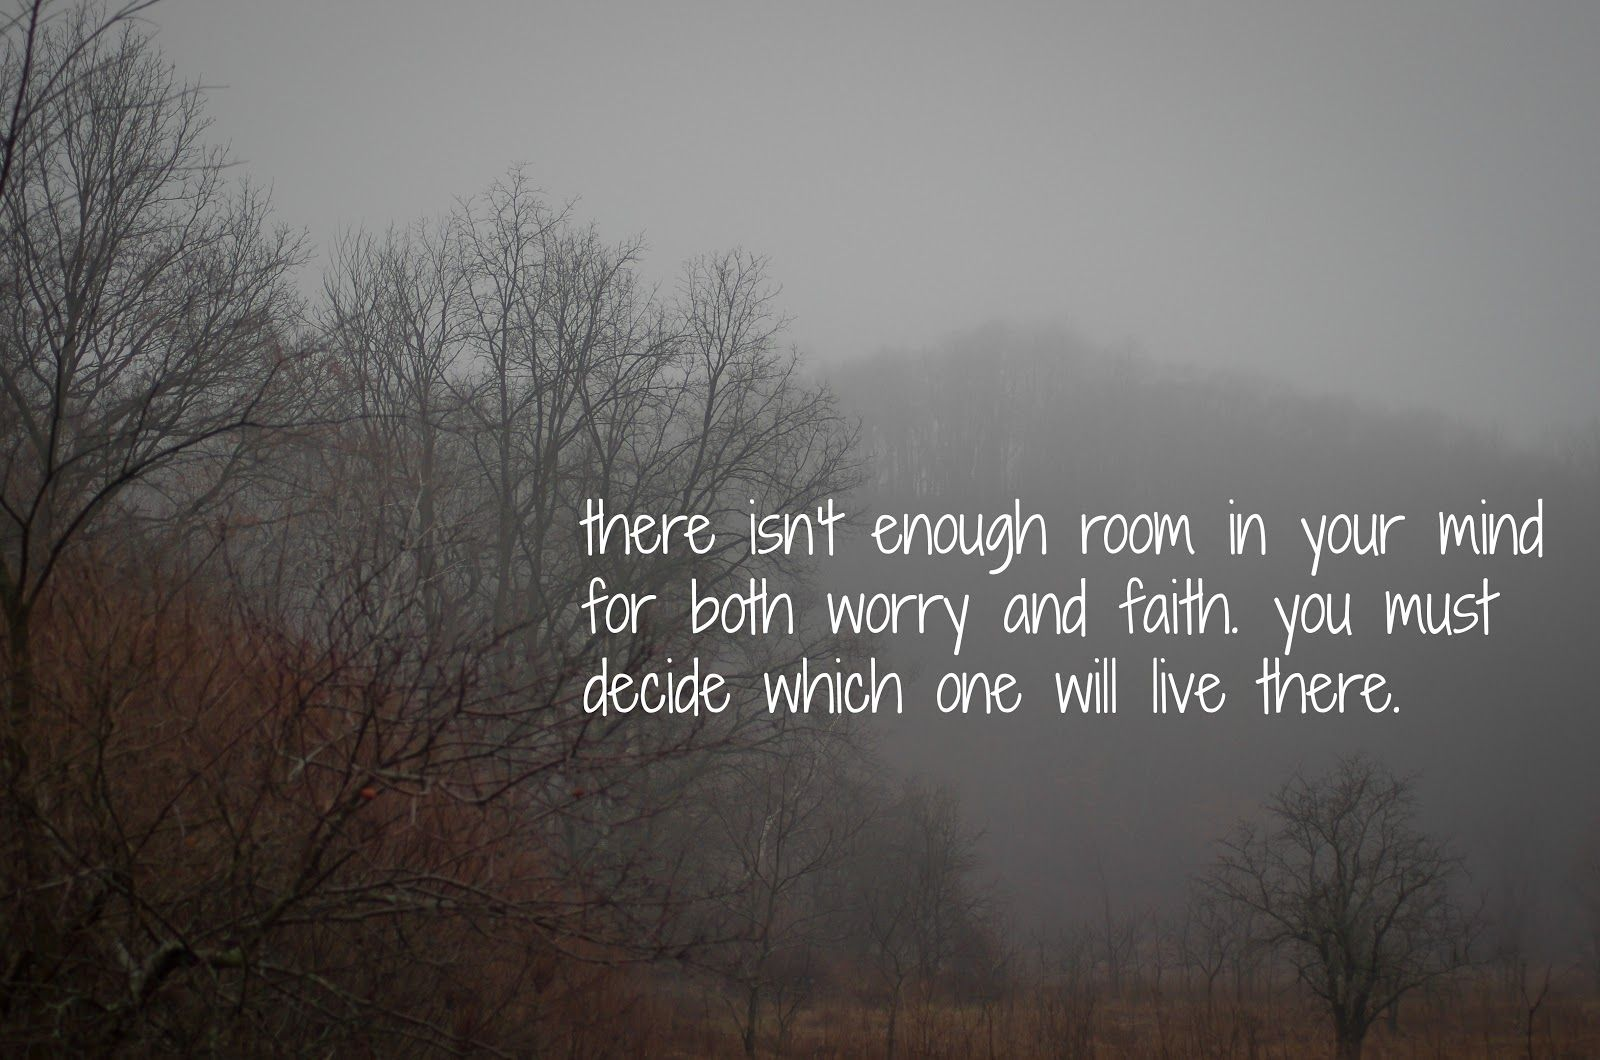 country Love Desktop Wallpaper : wallpaper quote pc tumblr - Google Search pc quotes Pinterest